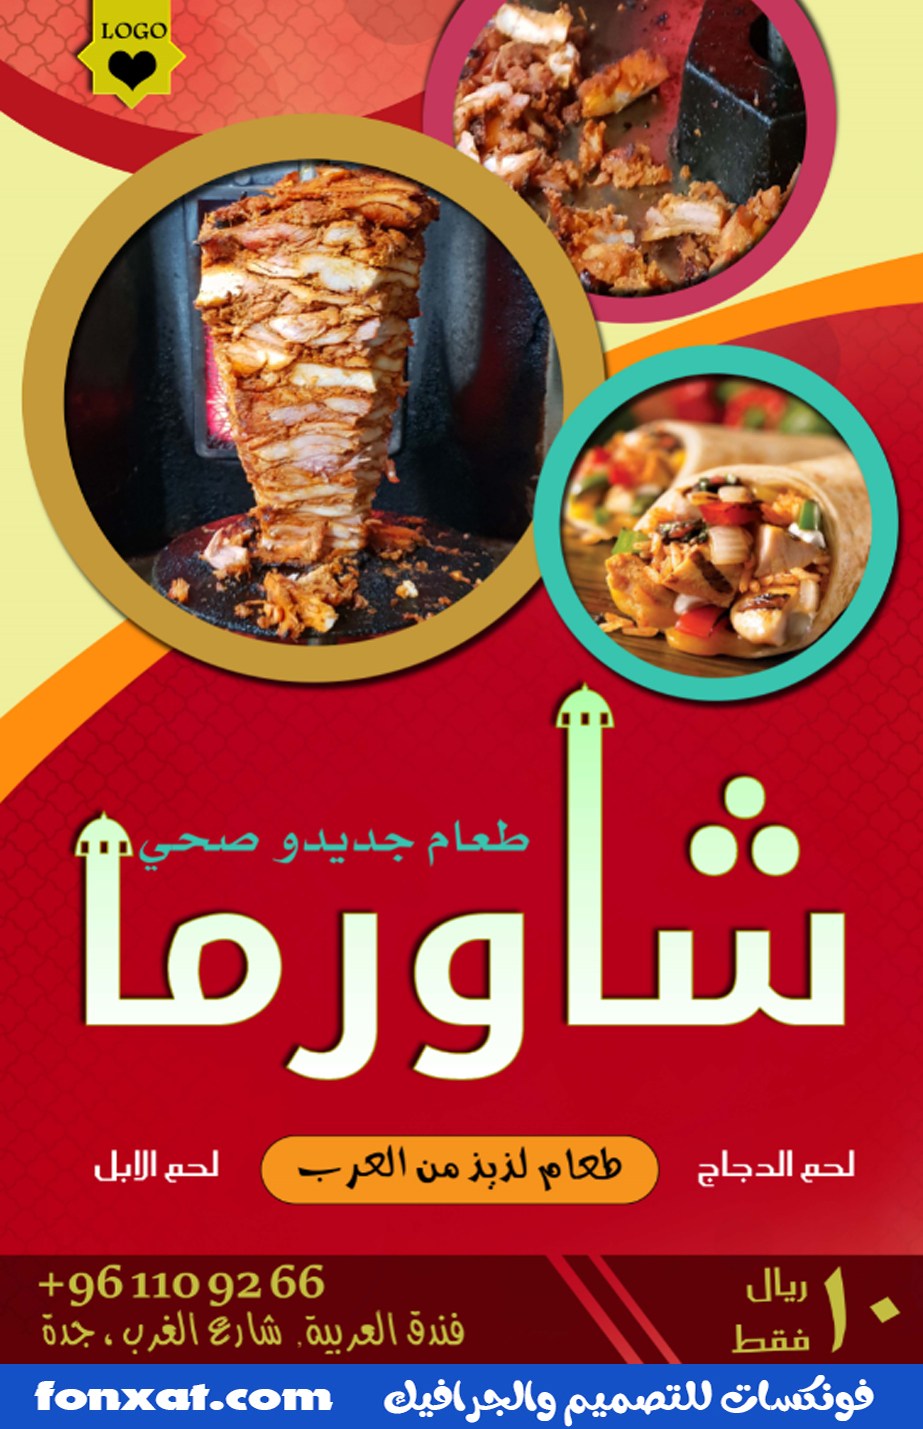 Food PSD design shawarma template for outdoor food